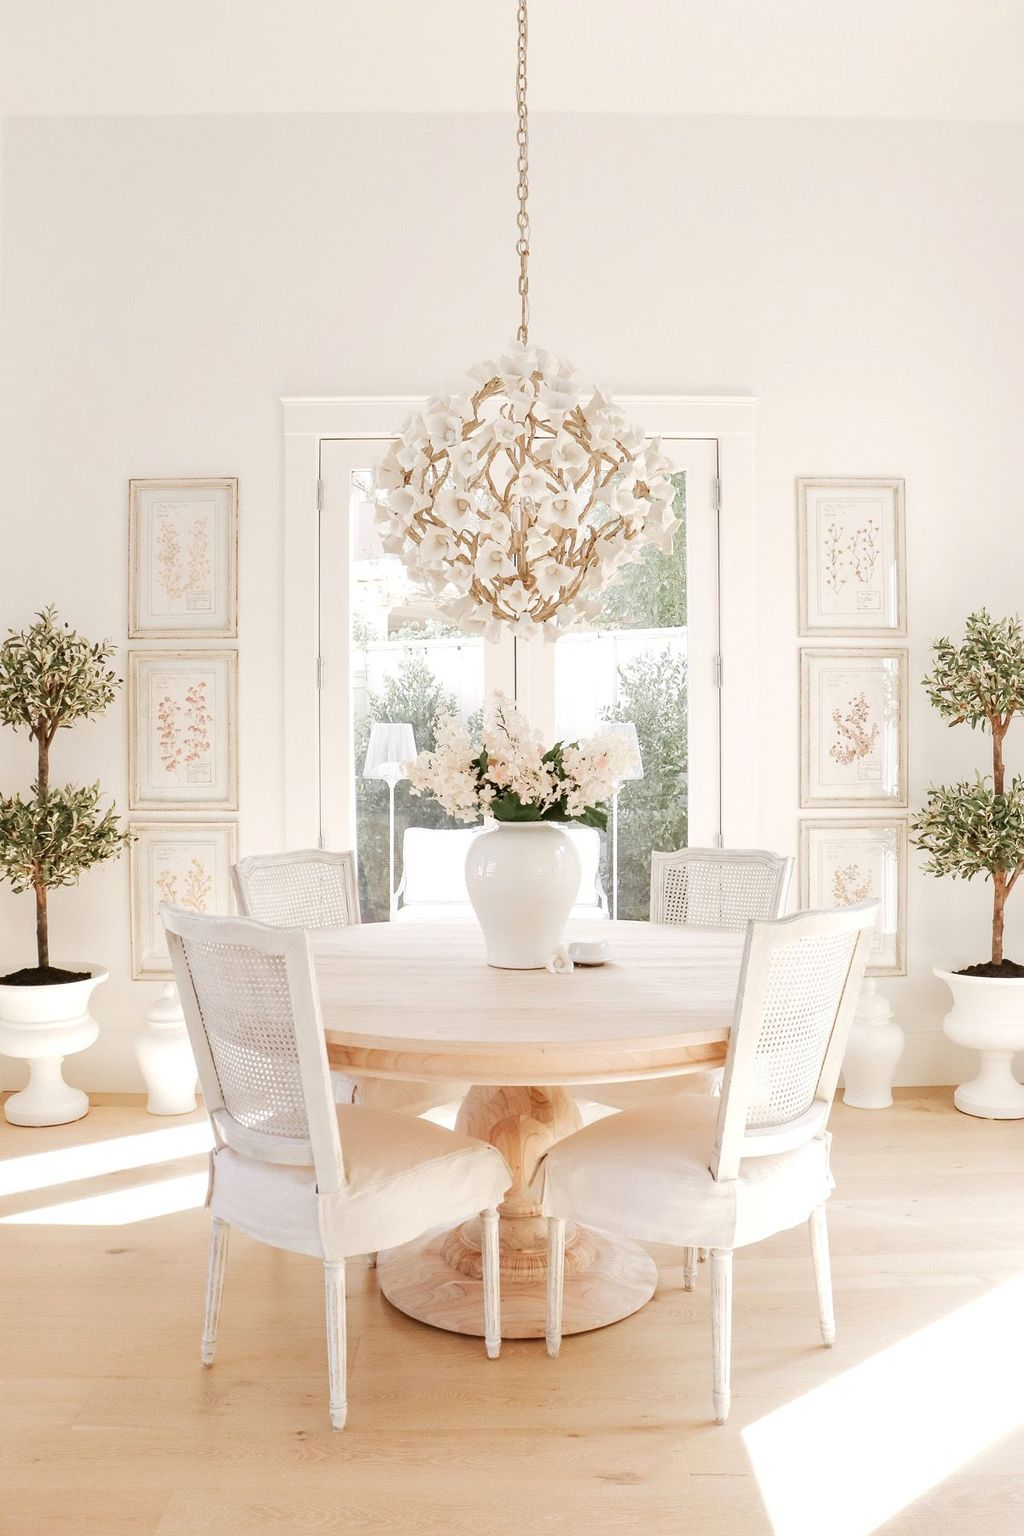 Admirable Dining Room Design Ideas You Will Love 09 1